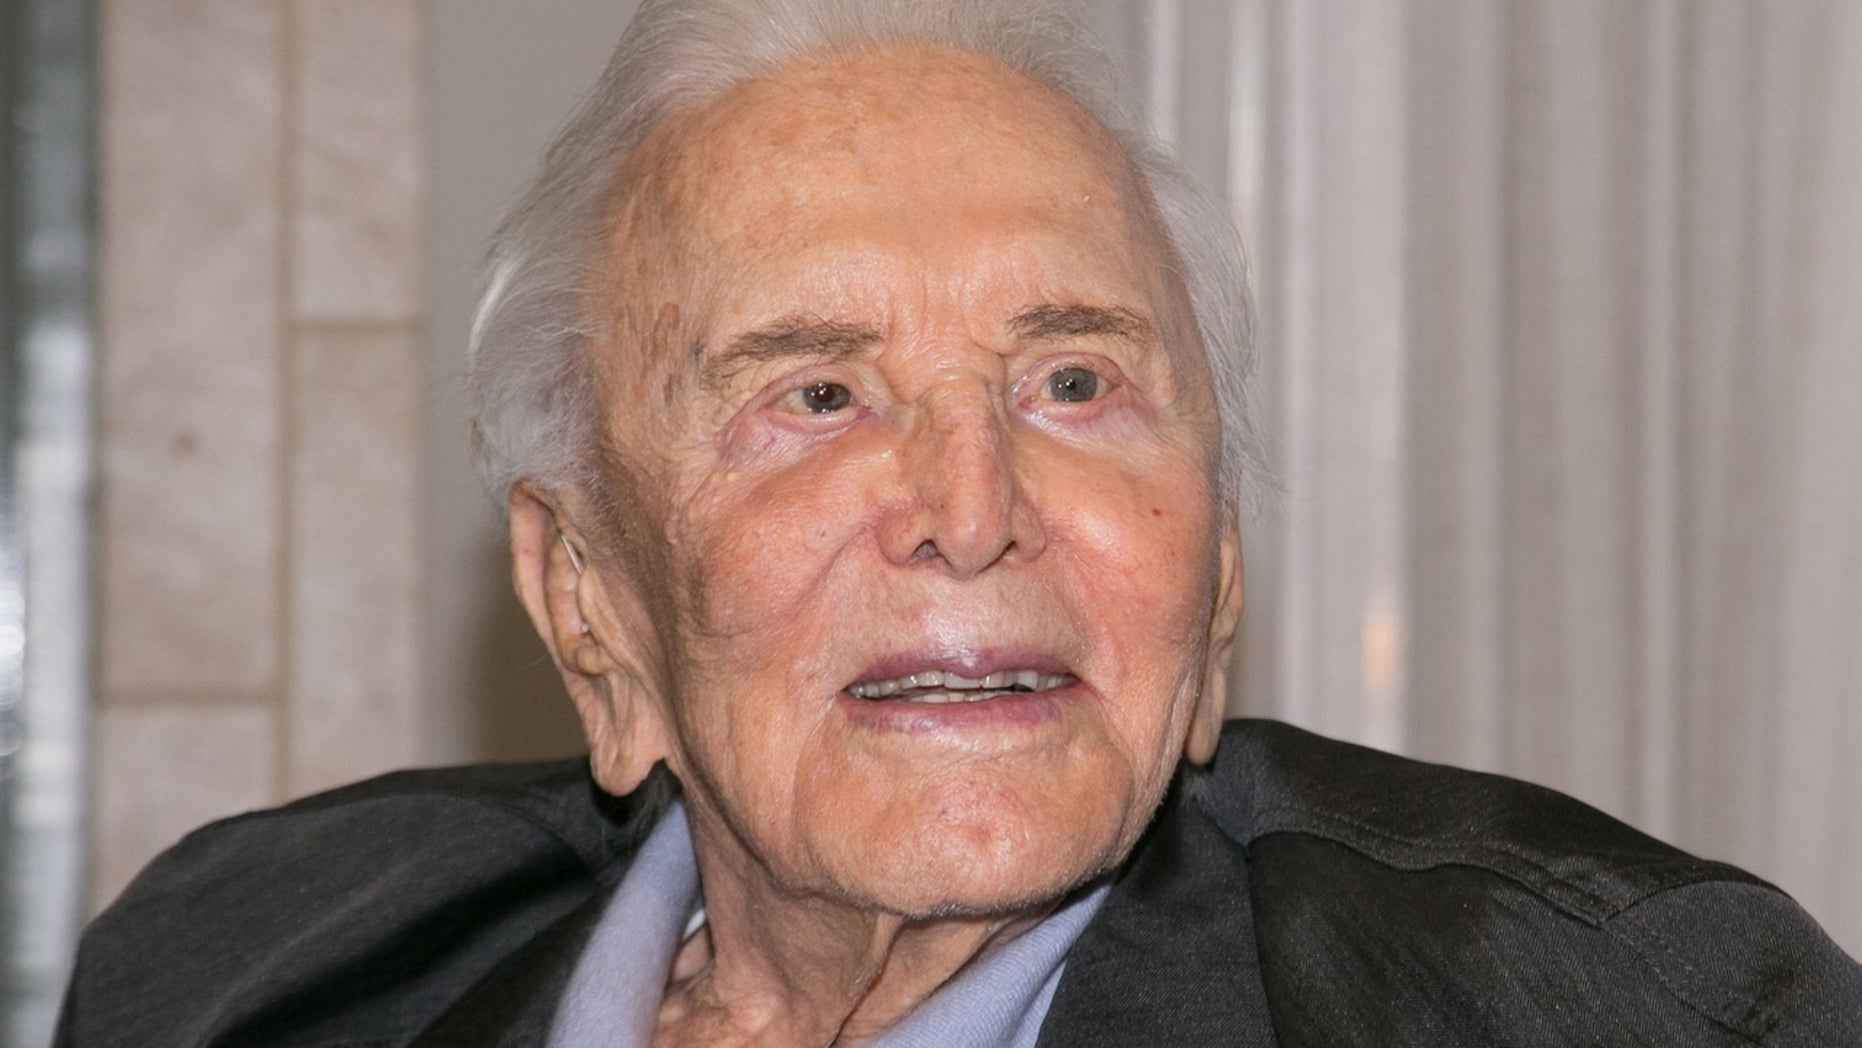 Kirk Douglas was honored with a marker at his New York birthplace.